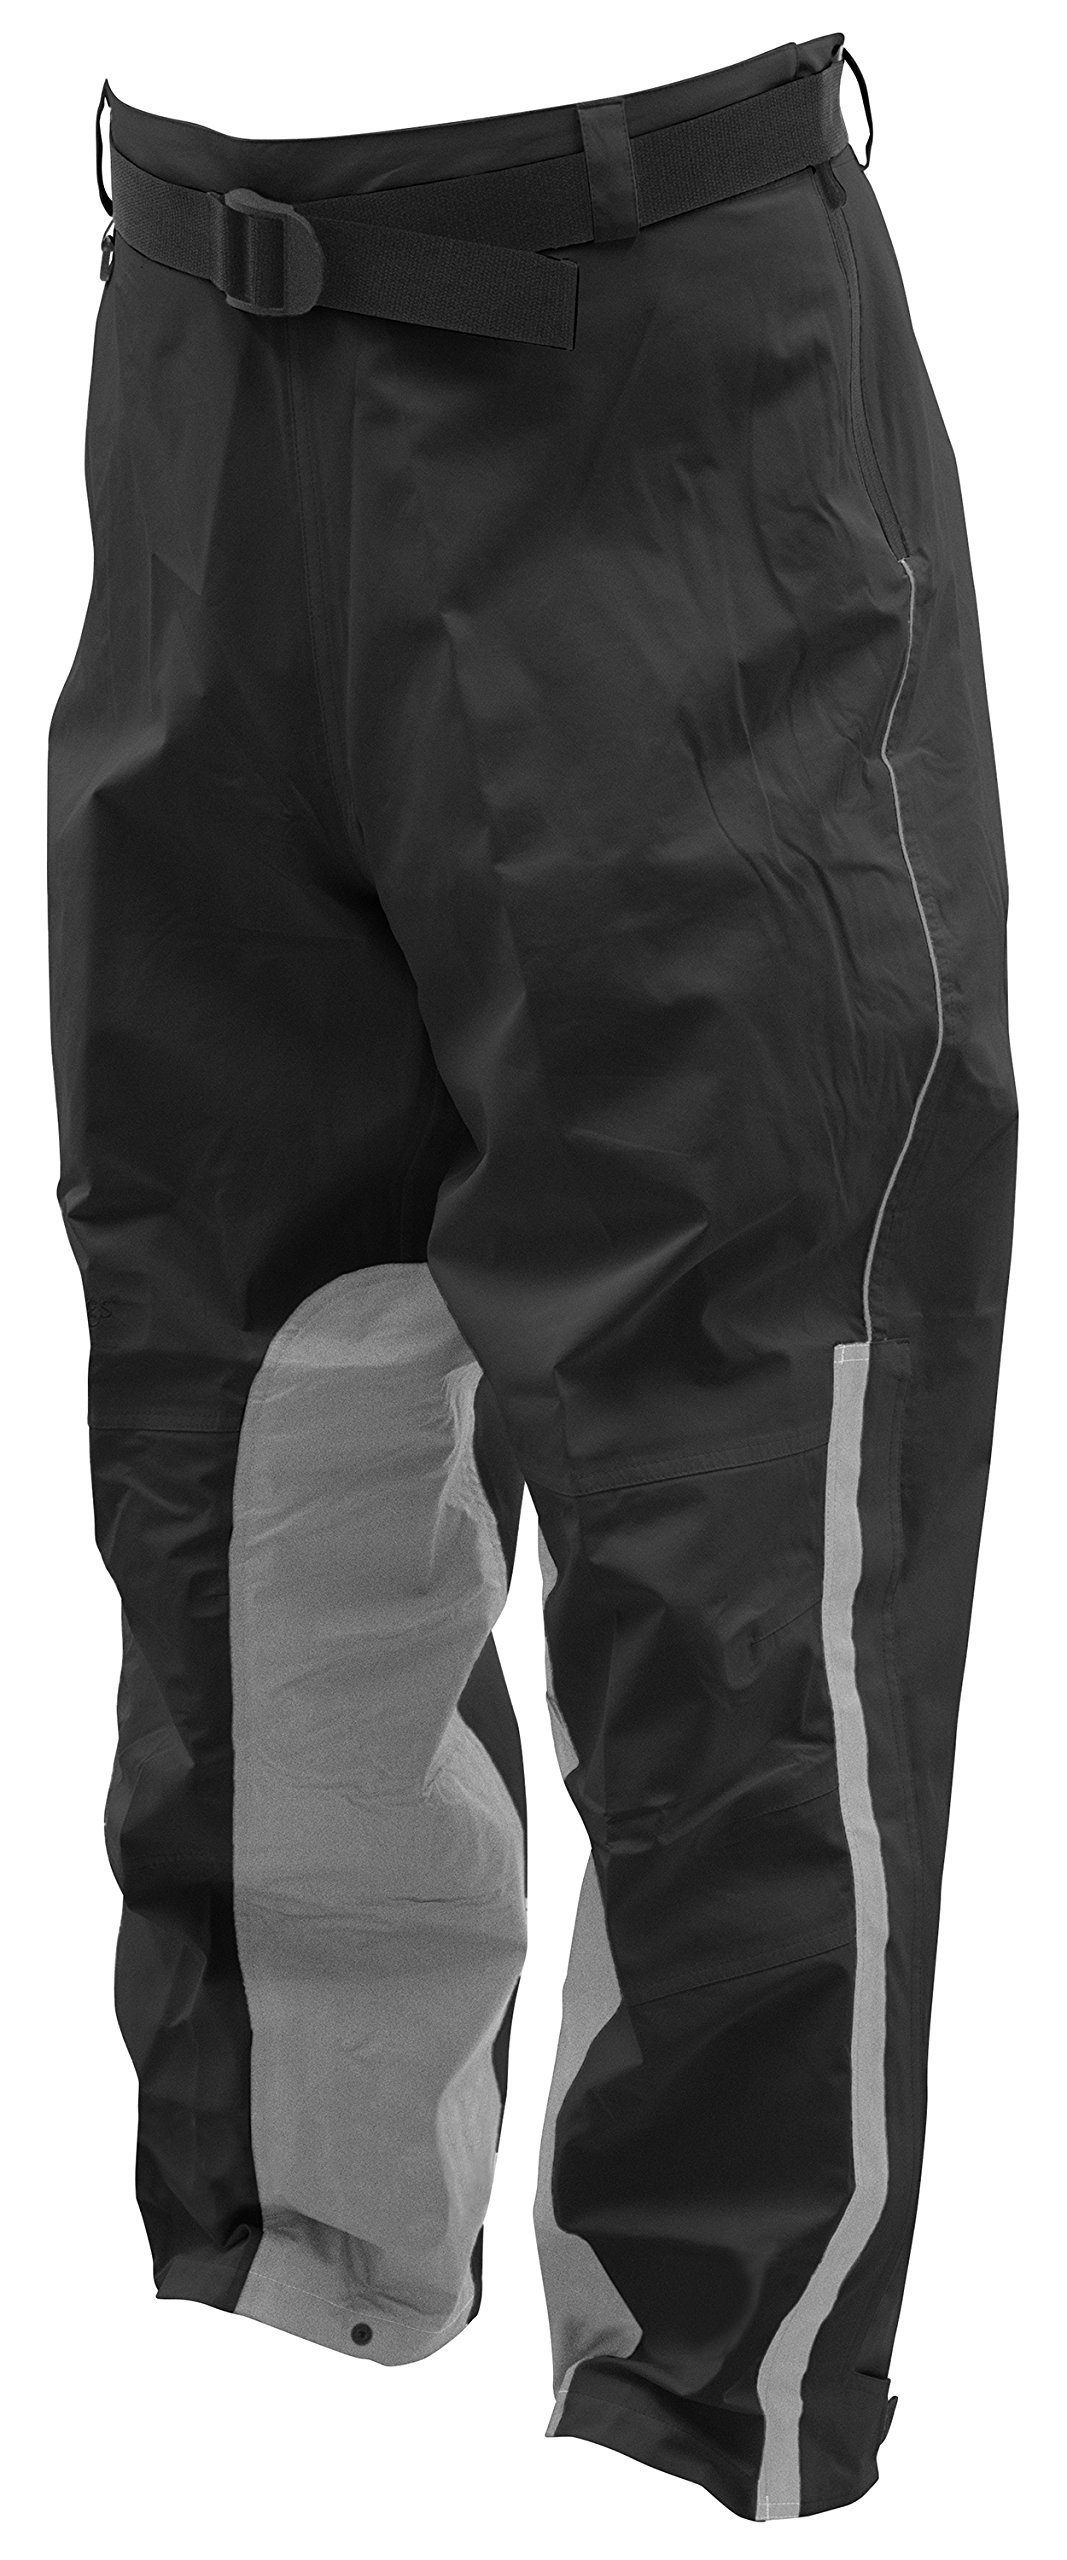 Frogg Toggs NTH85106-01SM ToadSkinz Reflective Pants, Black/Silver, Small